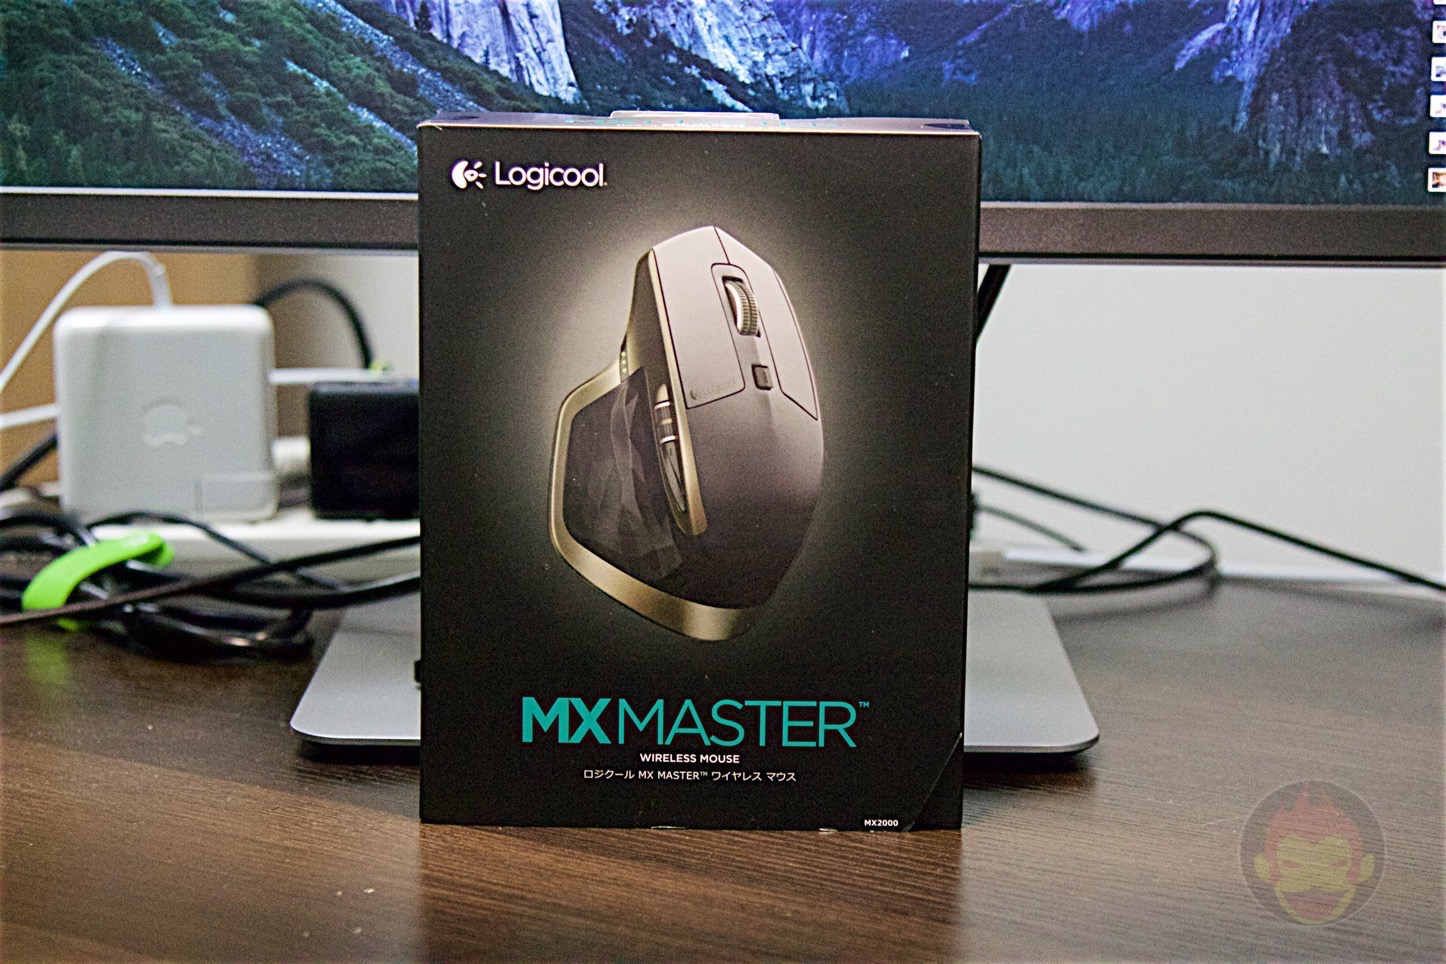 Logicool-MX-Master-Mouse-01.jpg